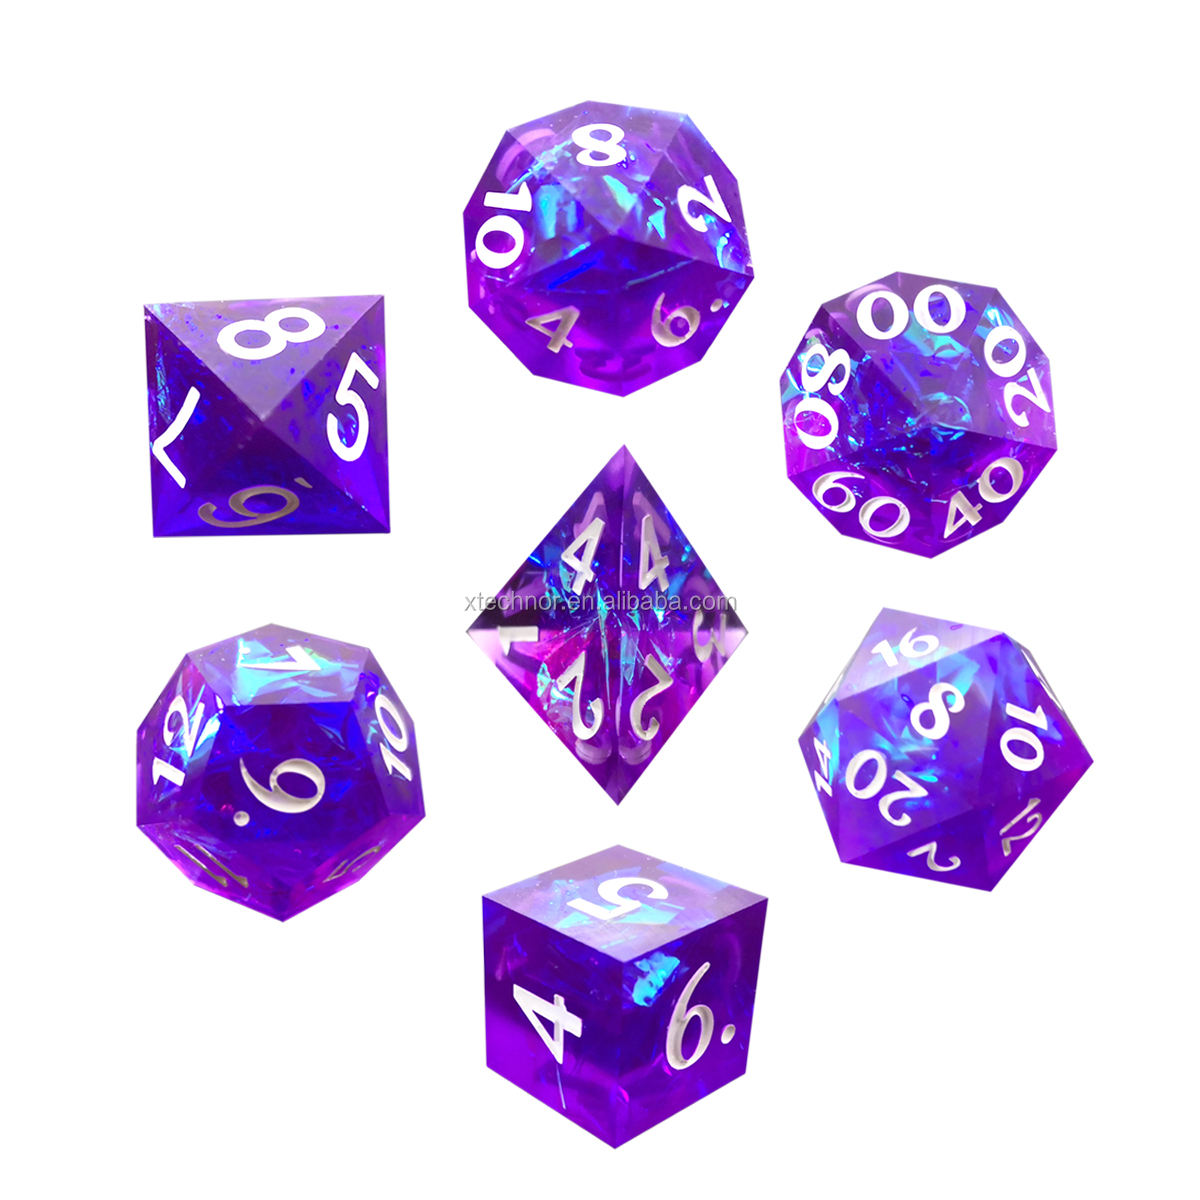 Sharp Edge Amethysts RPG dnd dice Set Role board Game with D4 D6 D8 D10 D% D12 D20 Great for DND Dungeons Dragons MTG play Games